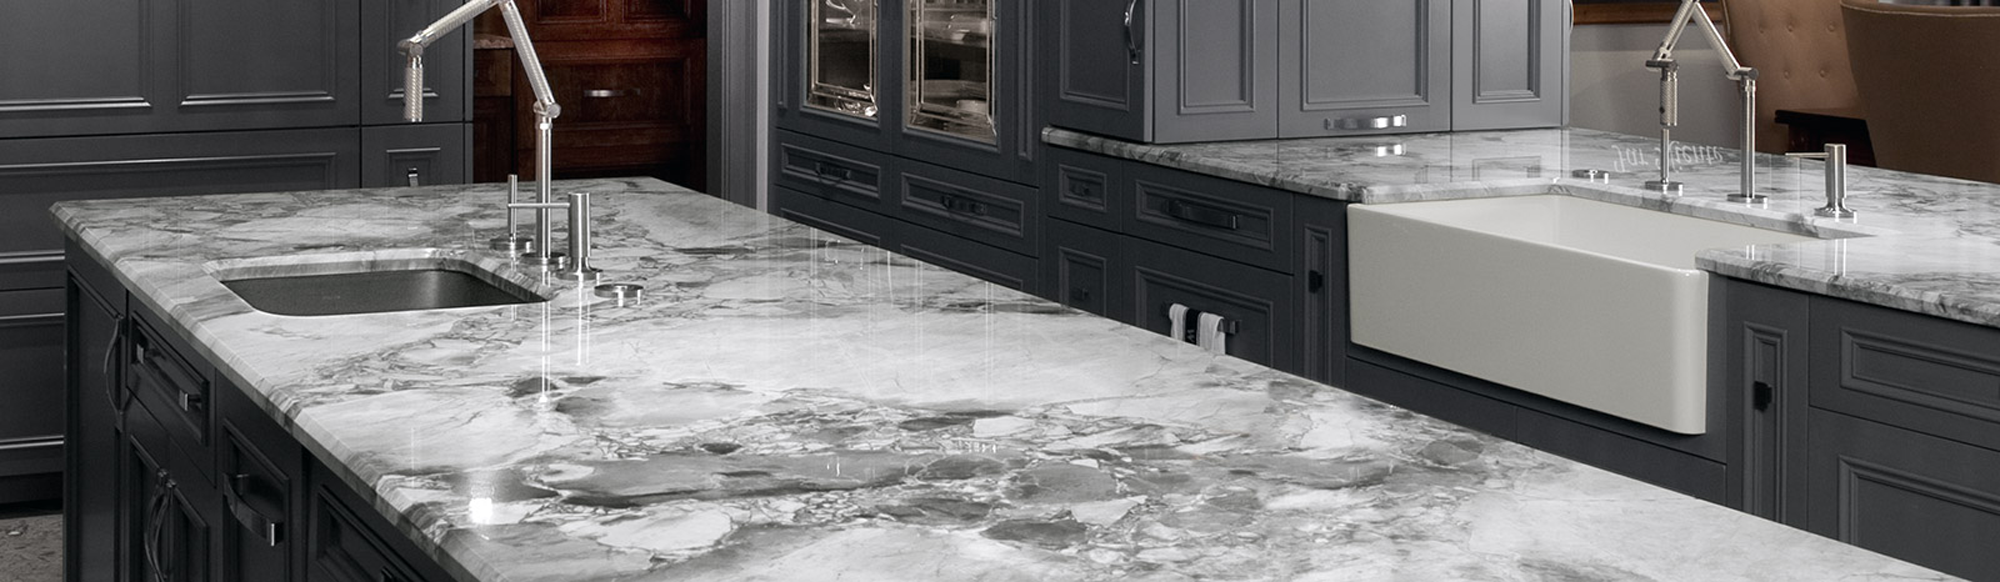 Countertops featured images